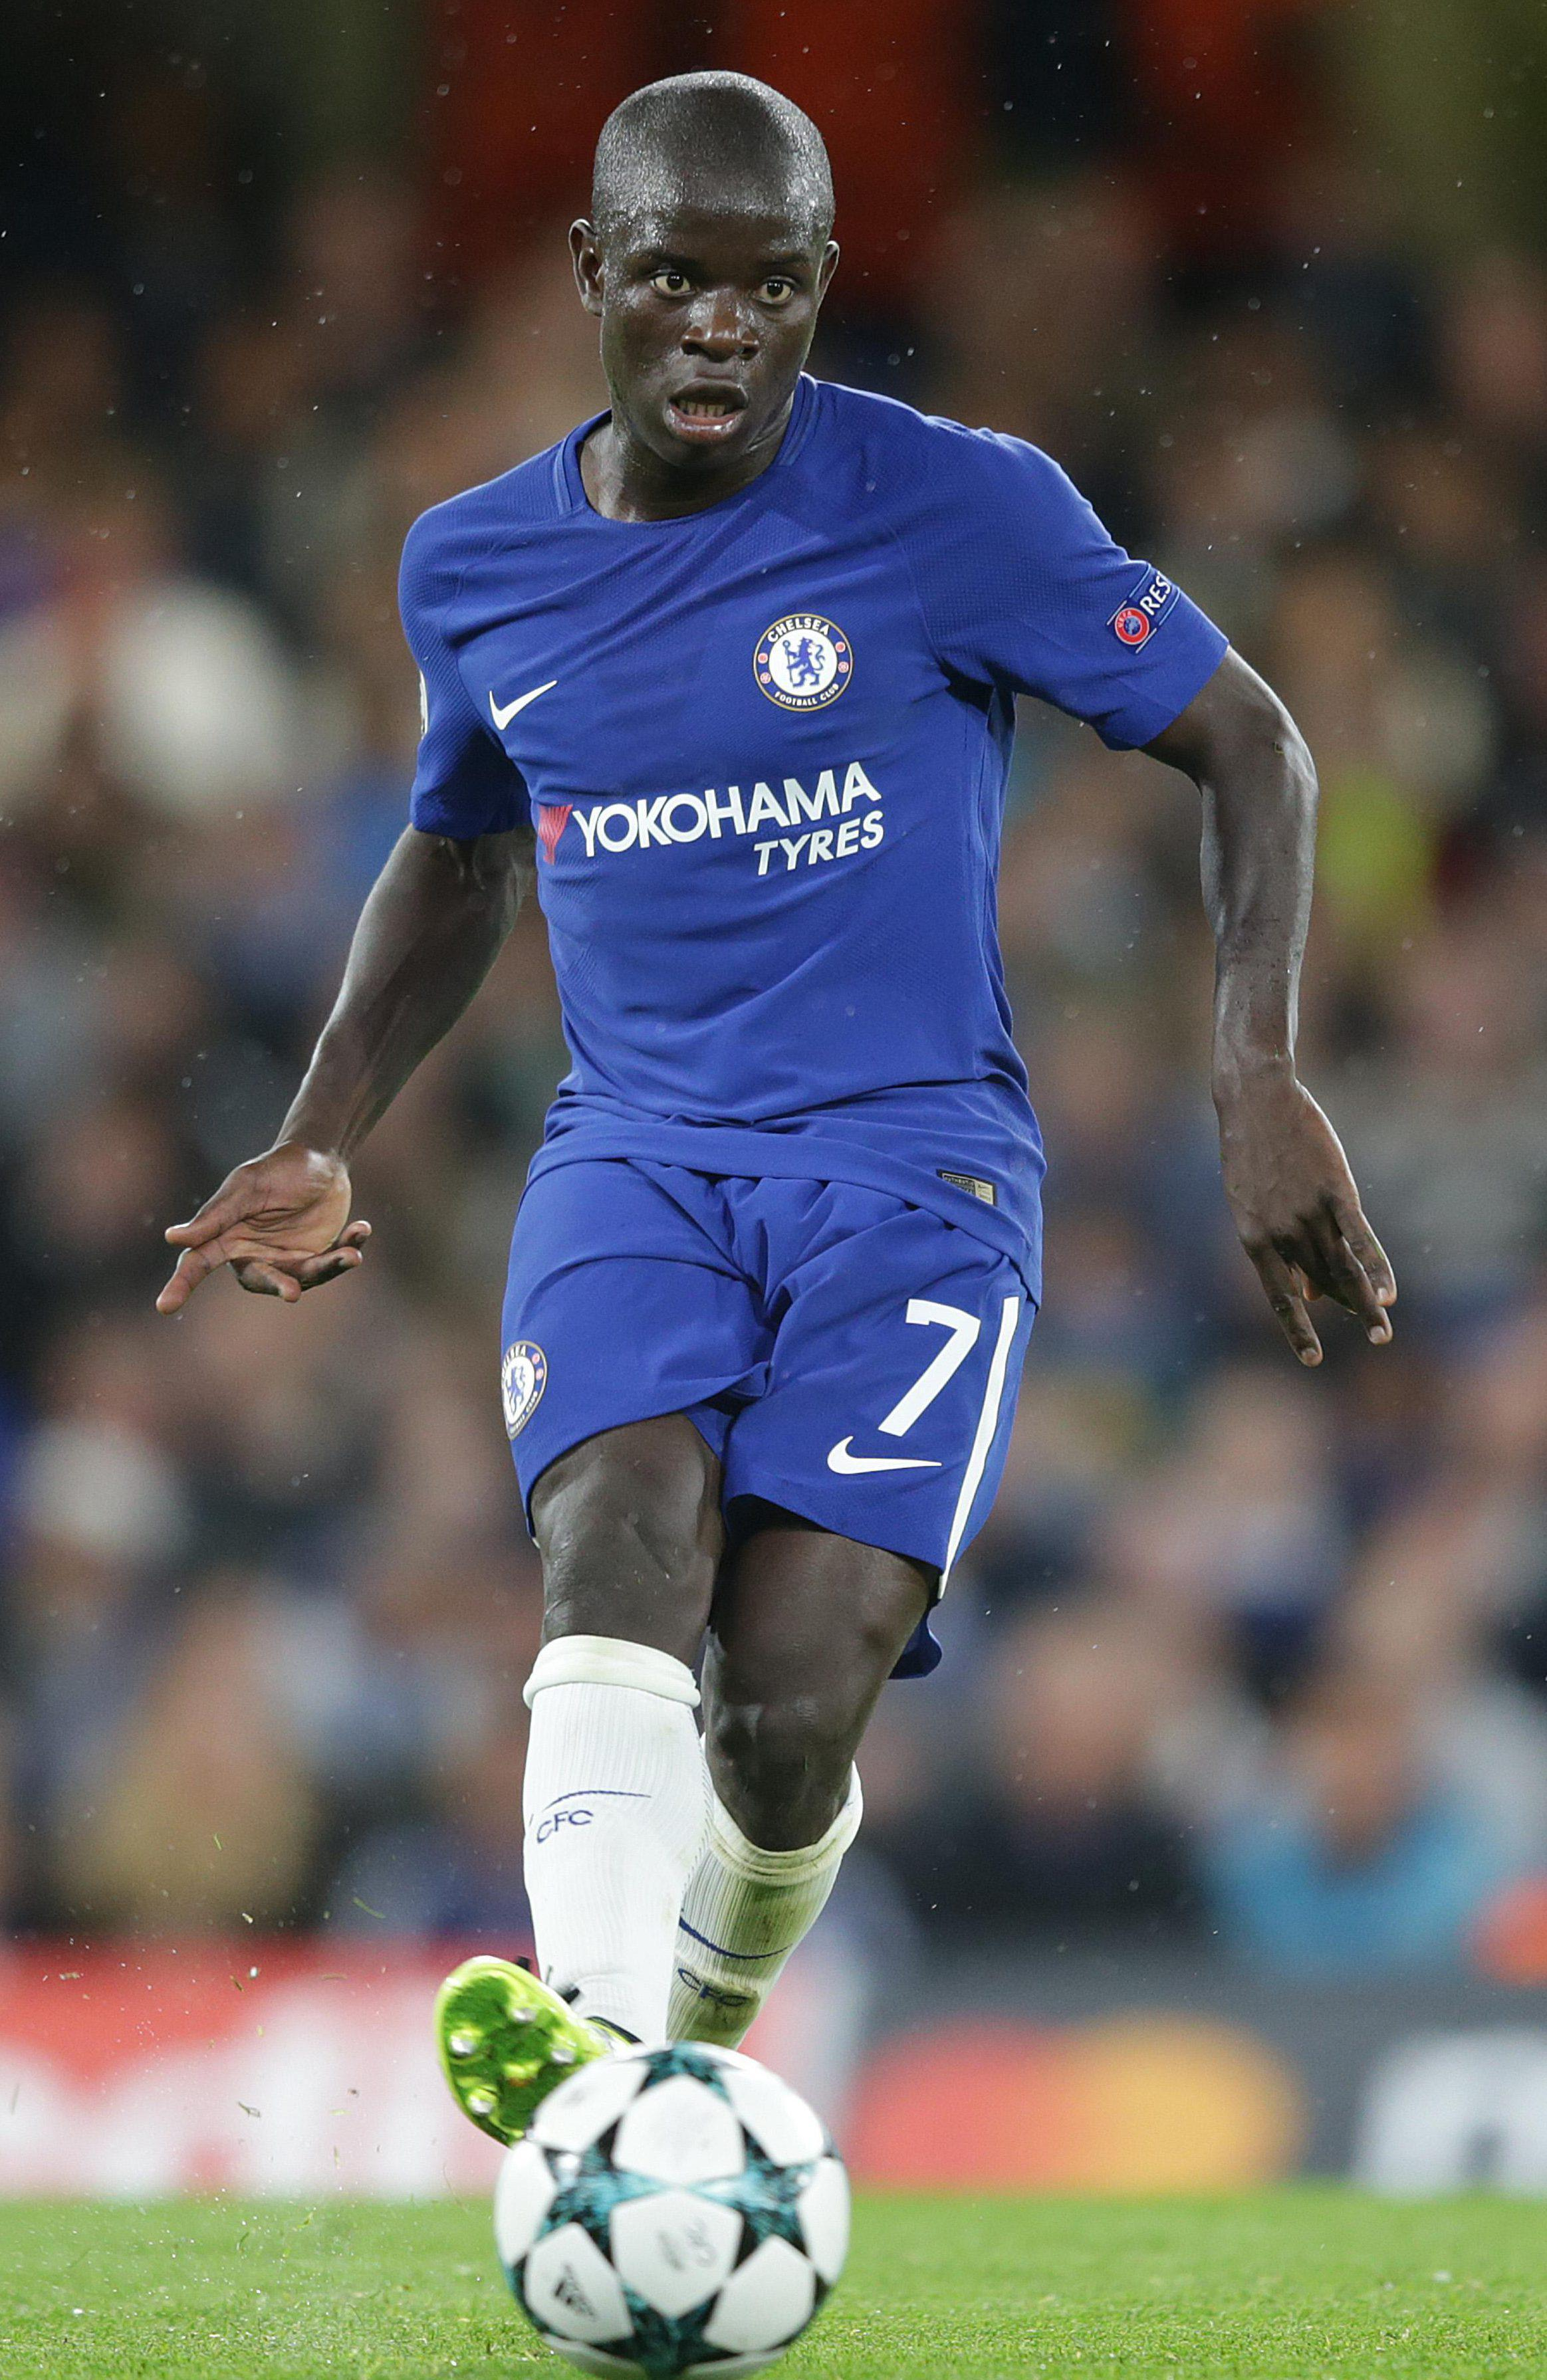 NGolo Kante has won back-to-back Premier League titles - first with Leicester, then for Chelsea